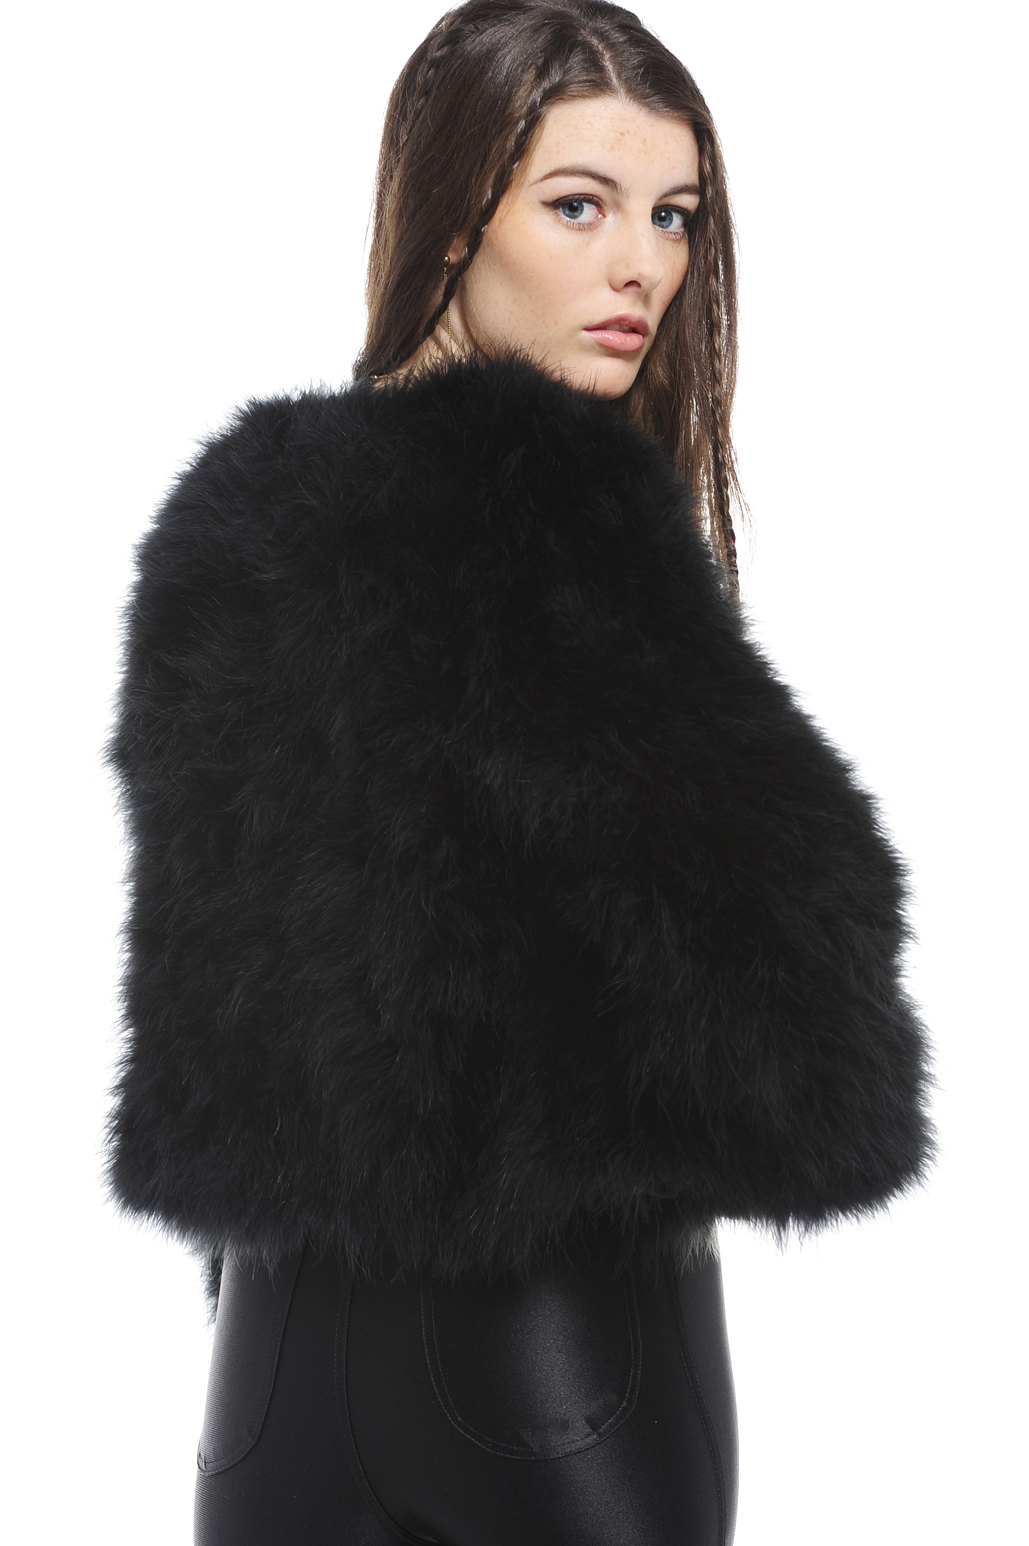 Buy women's coats & jackets online at French Connection now. Update your outerwear for SS18 with our chic collection of coats & lightweight jackets for women. black/black louie faux shearling reversible coat annie faux shearling coat £ colours. dark camel womens faux-fur coat. Related Products. Palace Wool Coat. In irresistible.